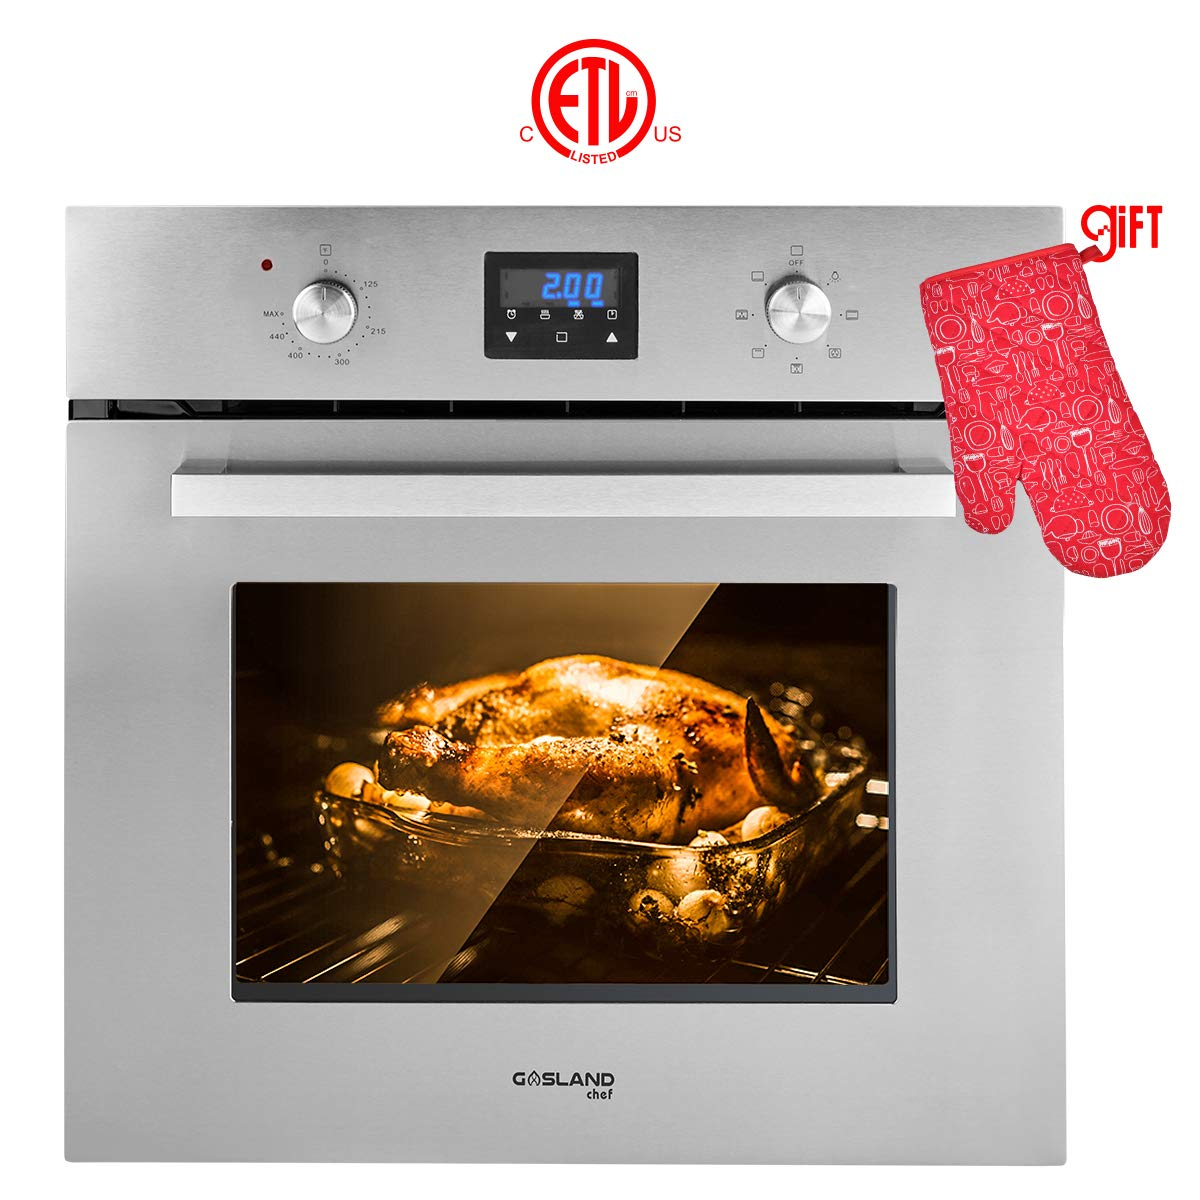 "Single Wall Oven, GASLAND Chef ES609DS 24"" Built-in Electric Single Wall Oven, 9 Cooking Function, Stainless Steel Electric Wall Oven with Cooling Down Fan, 3 Layer Glass, ETL Safety Certified"